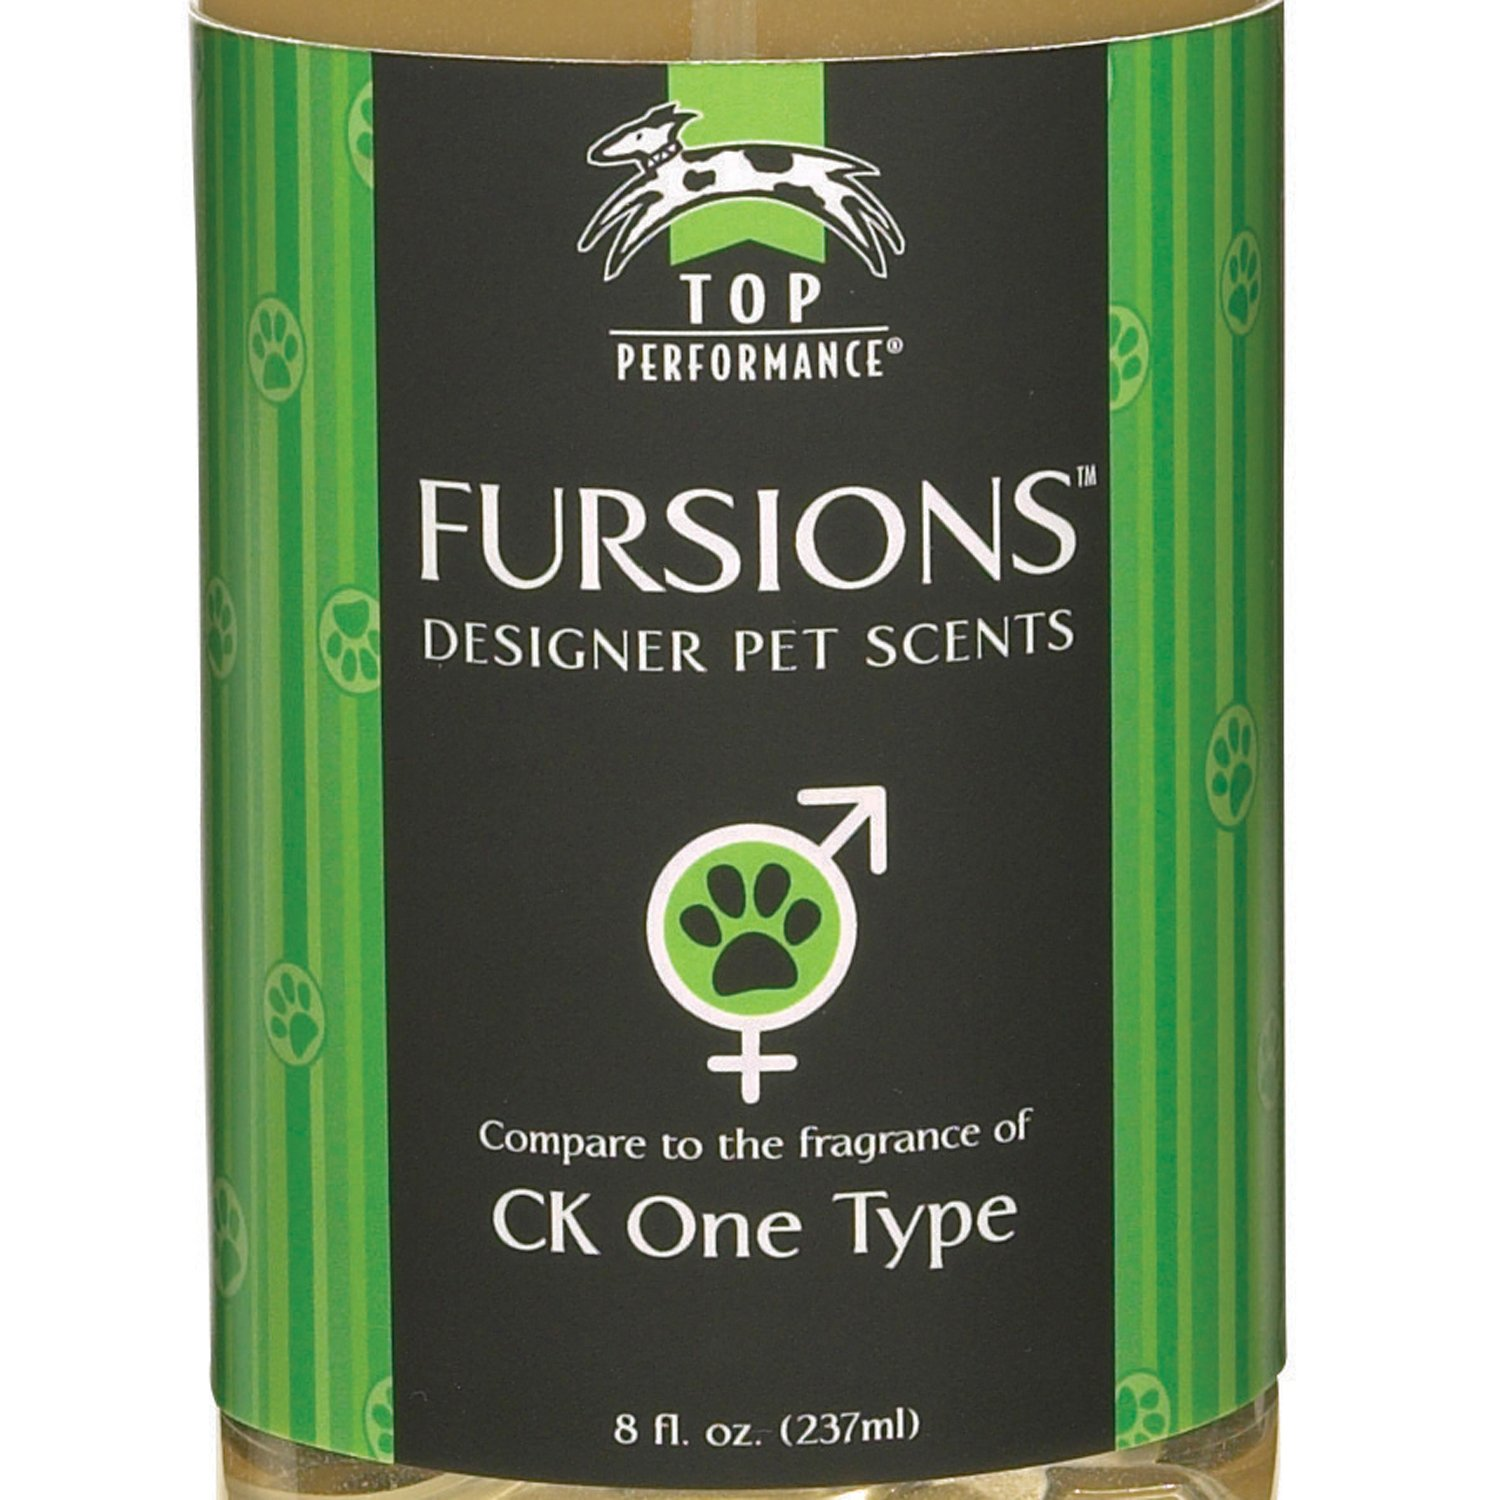 Amazon.com : Top Performance Fursions Dog Cologne - Provides Fashionable Scents for After or Between Groomings, CK One Scent, 8 Oz. : Pet Colognes : Pet ...